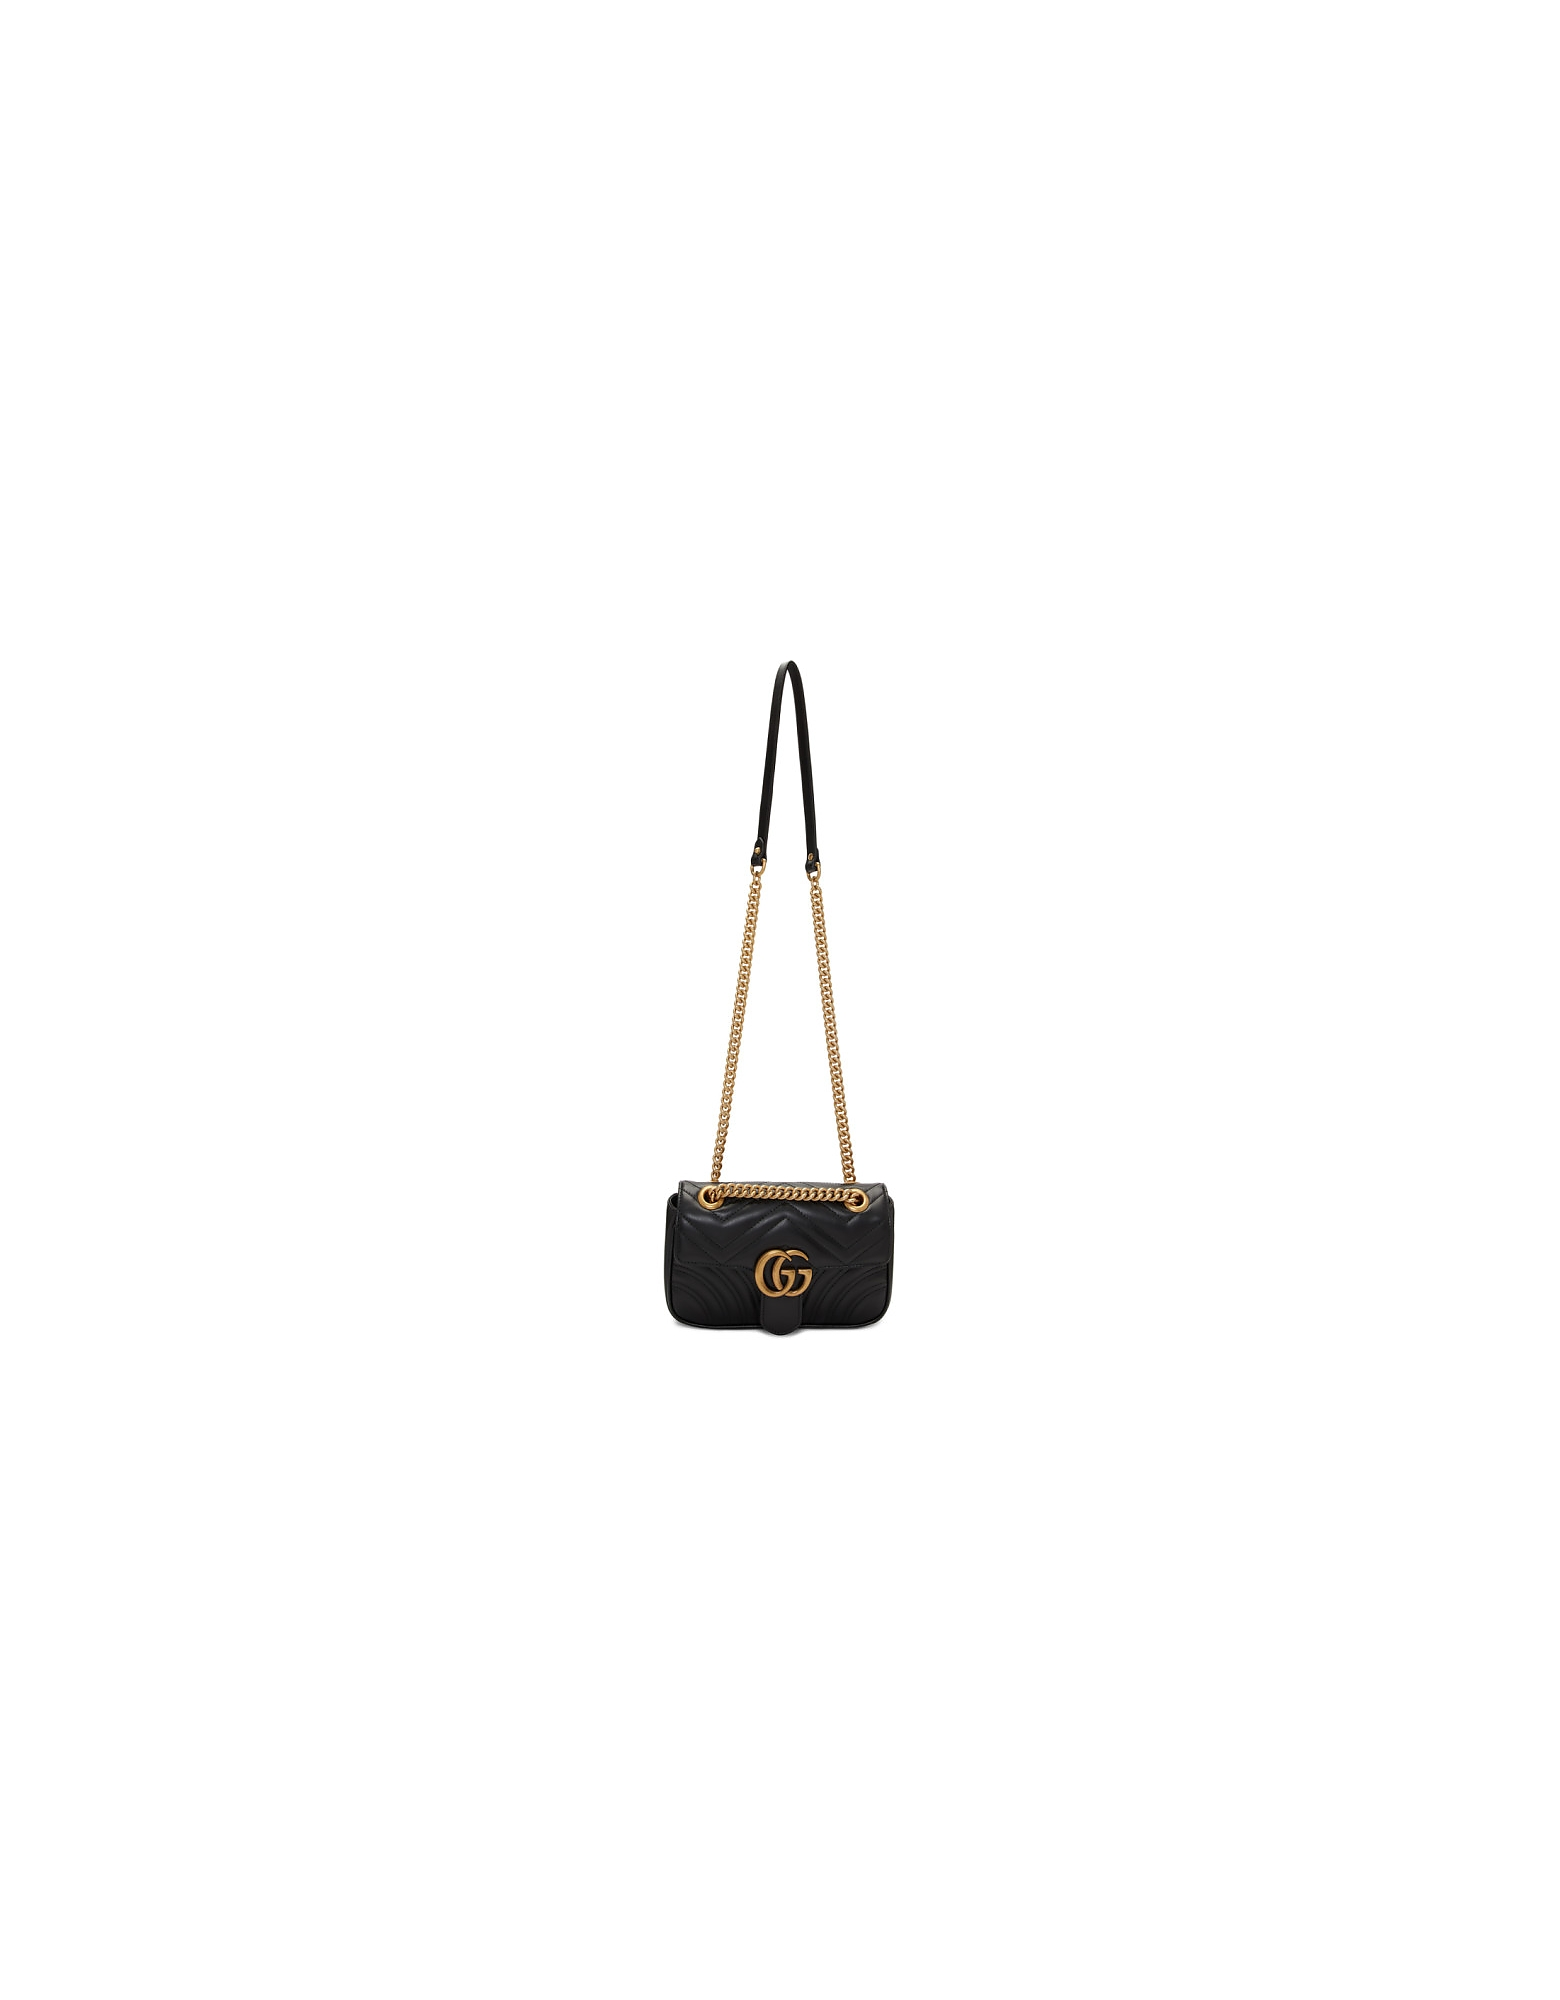 Gucci Designer Handbags, Black Mini GG Marmont Bag